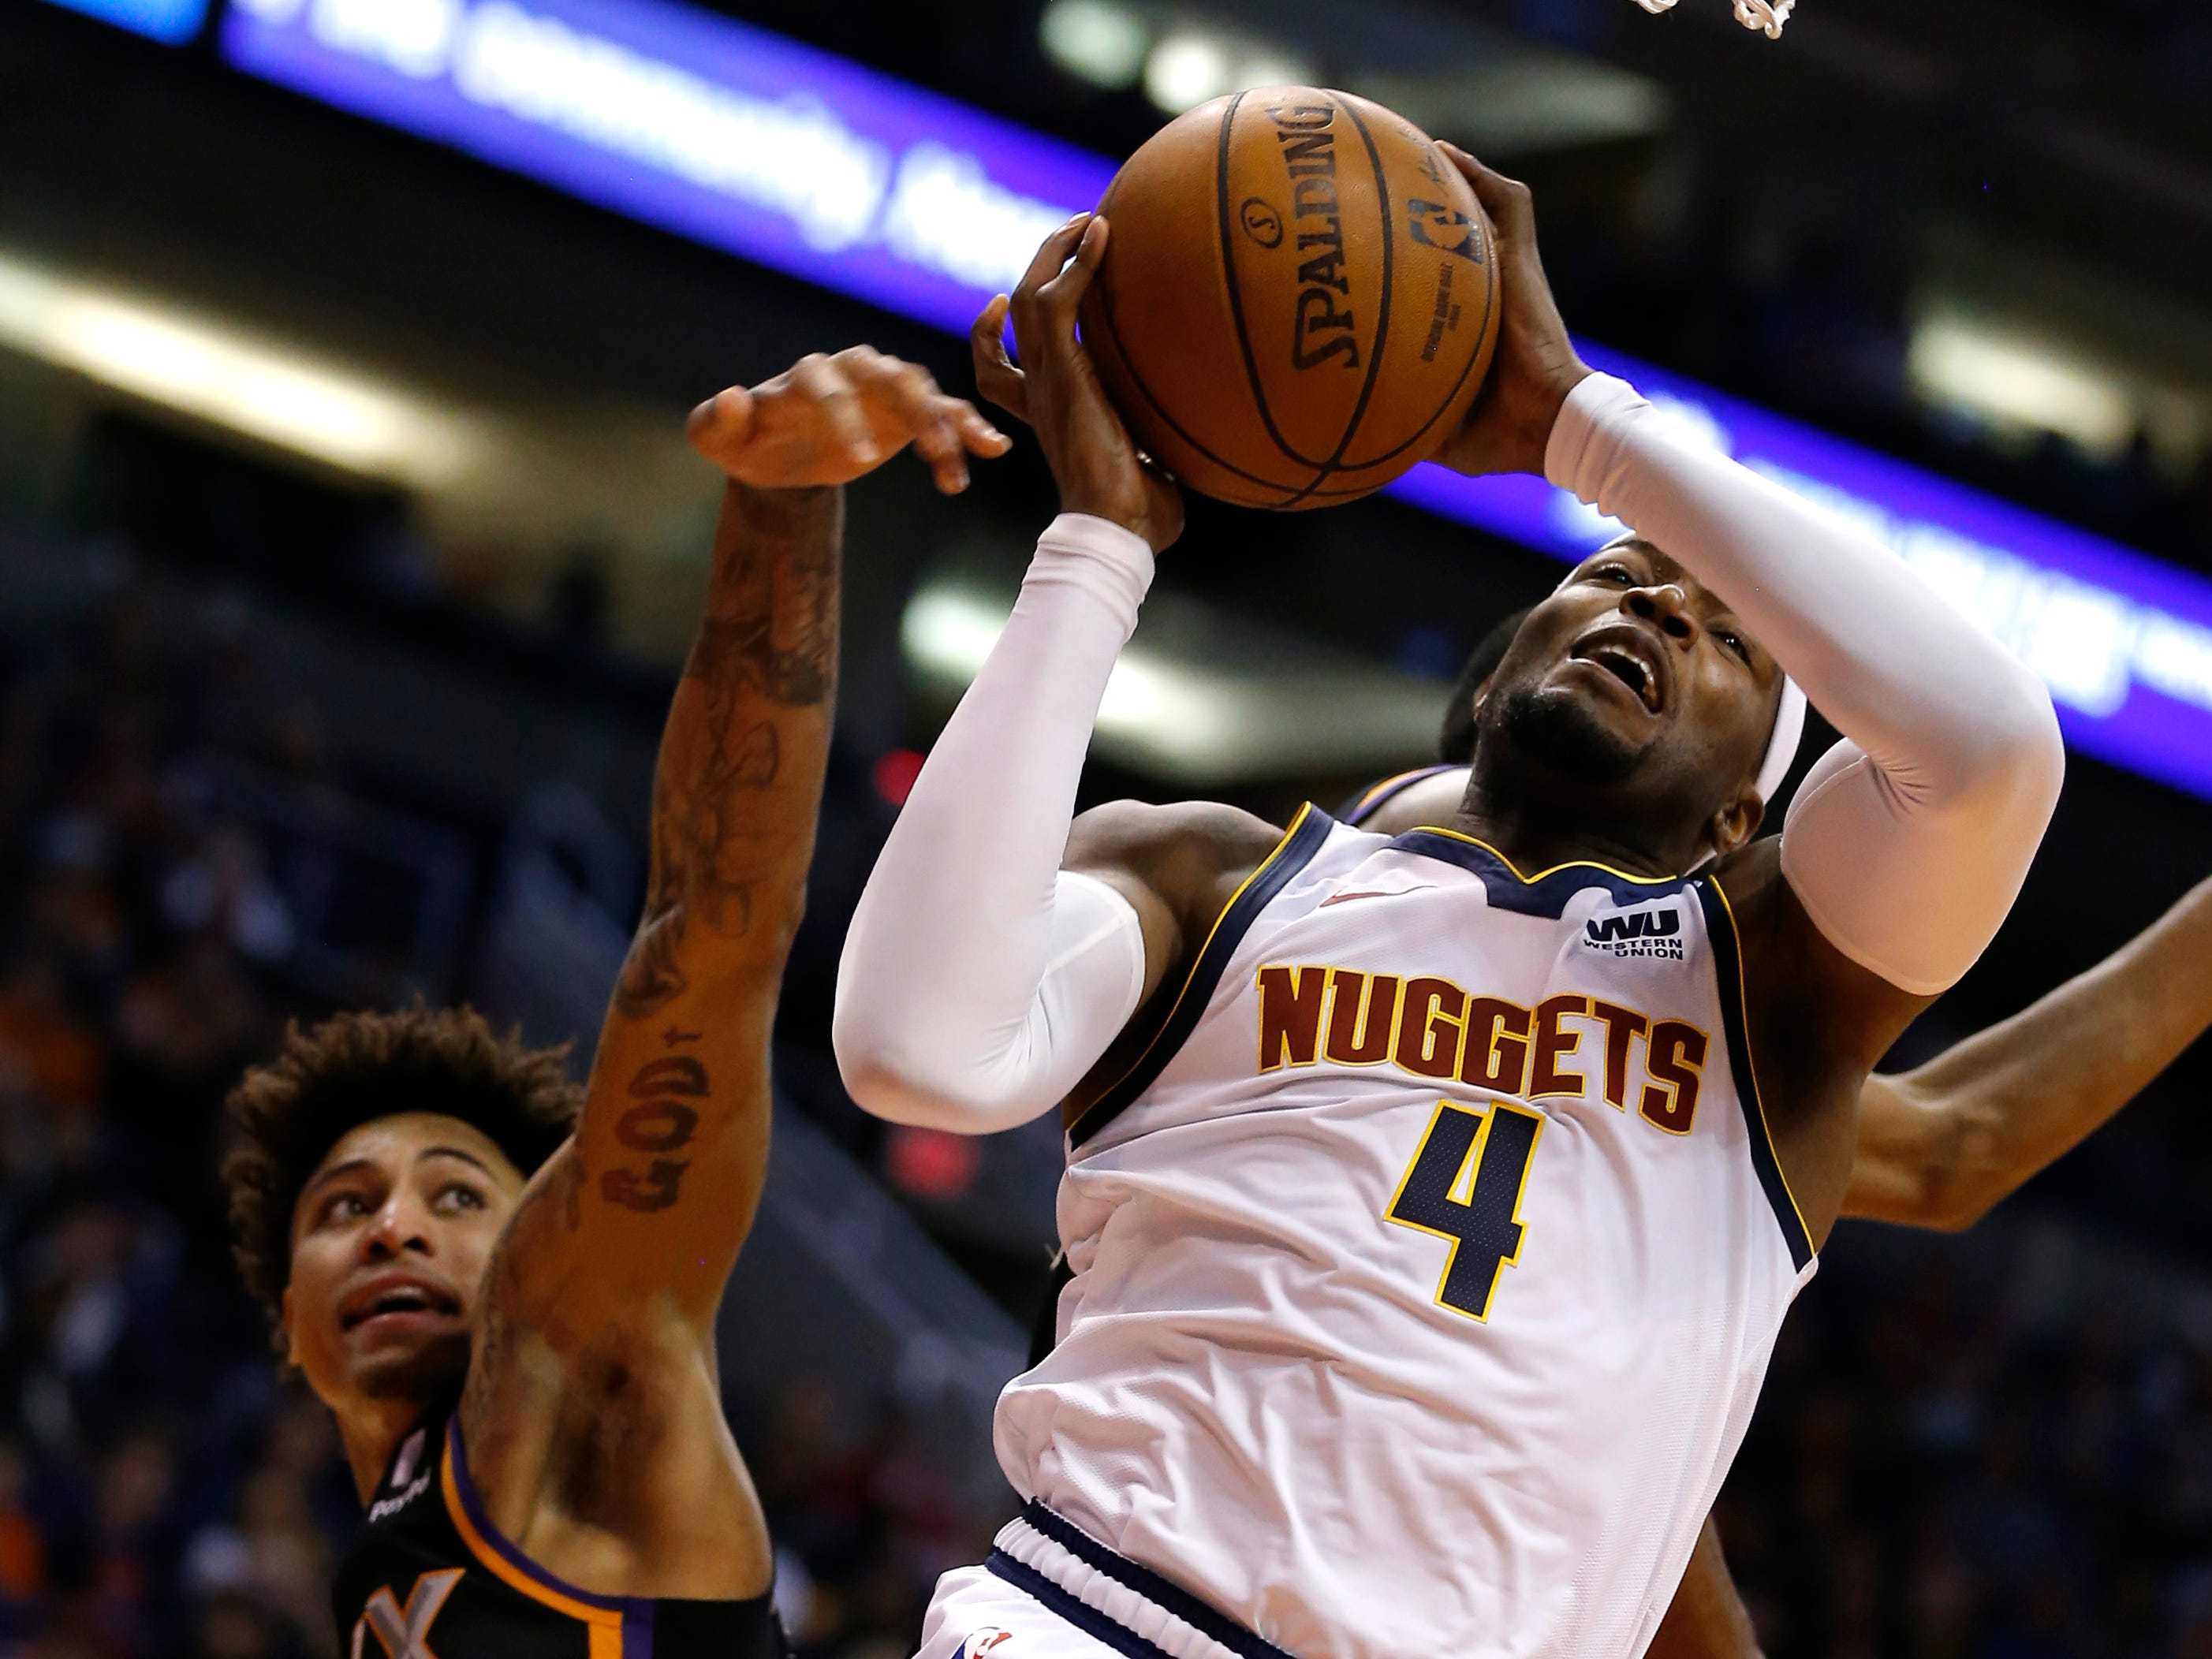 Denver Nuggets forward Paul Millsap (4) drives past Phoenix Suns forward Kelly Oubre Jr., Jan. 12, 2019, in Phoenix. (AP Photo/Rick Scuteri)